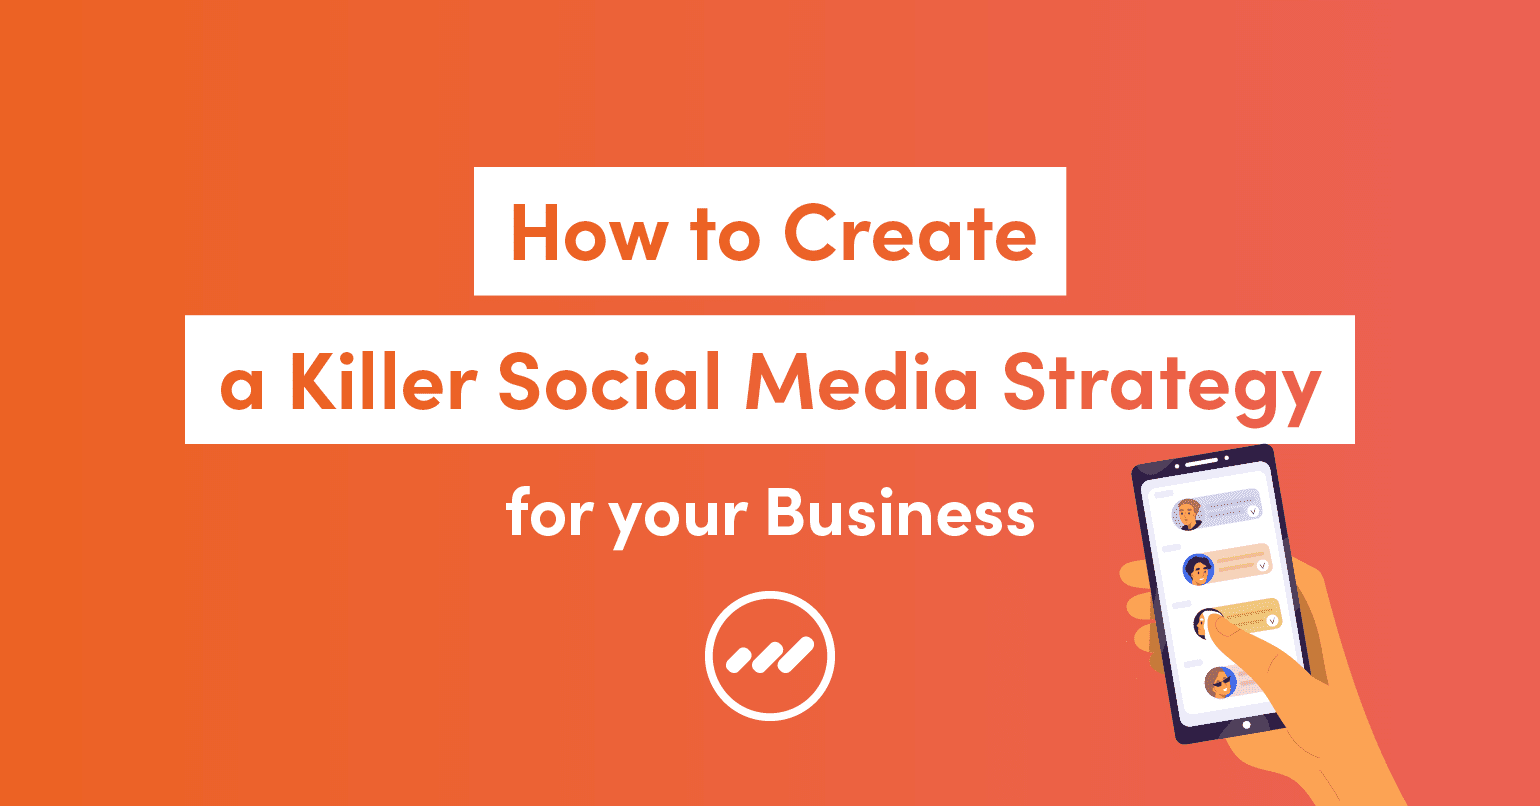 MM-Blog-HowCreateKillerSocialMediaStrategyForYourBusiness-Blog